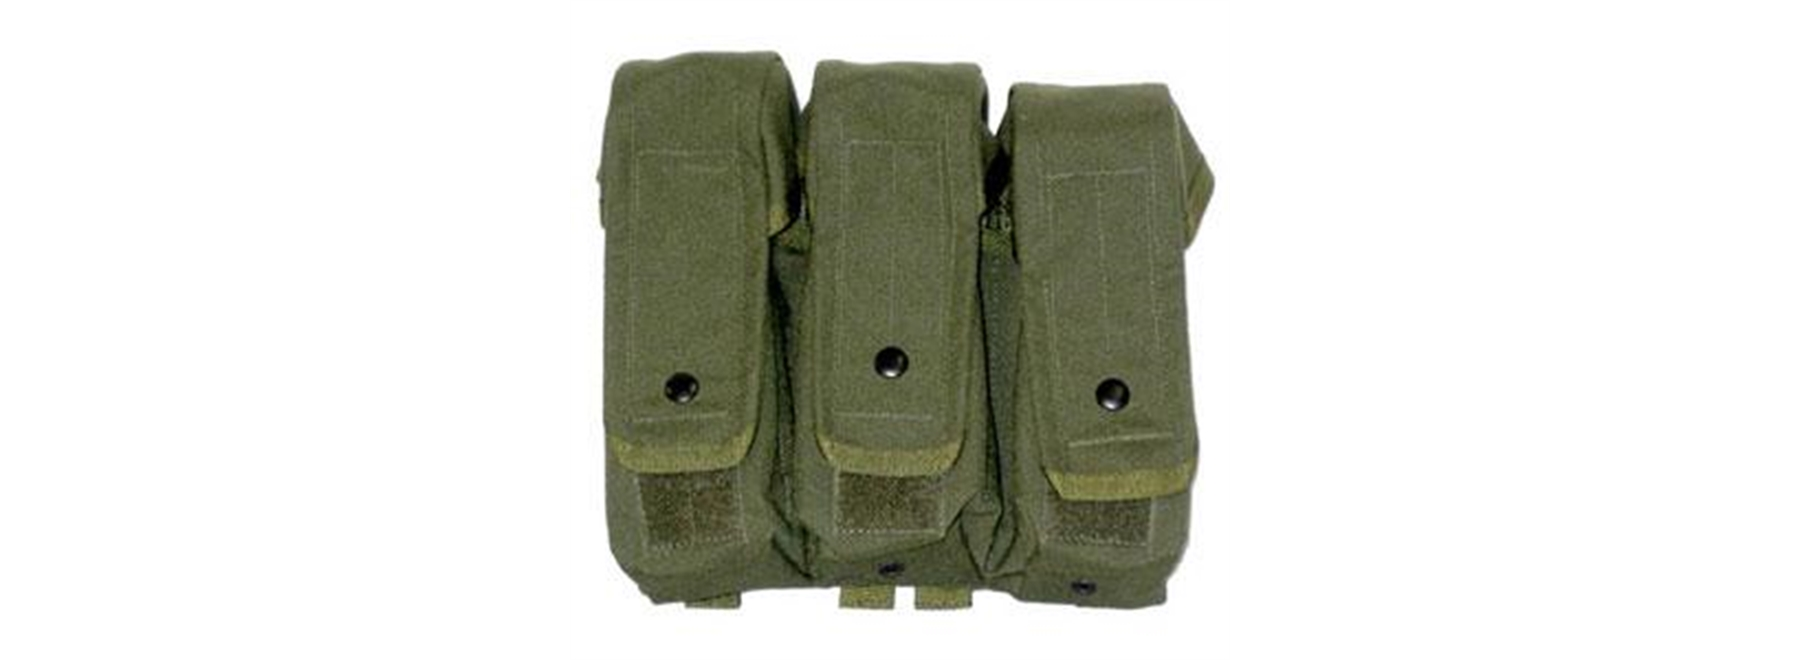 S.T.R.I.K.E.™ AK/M4 Triple Mag Pouch Holds 6